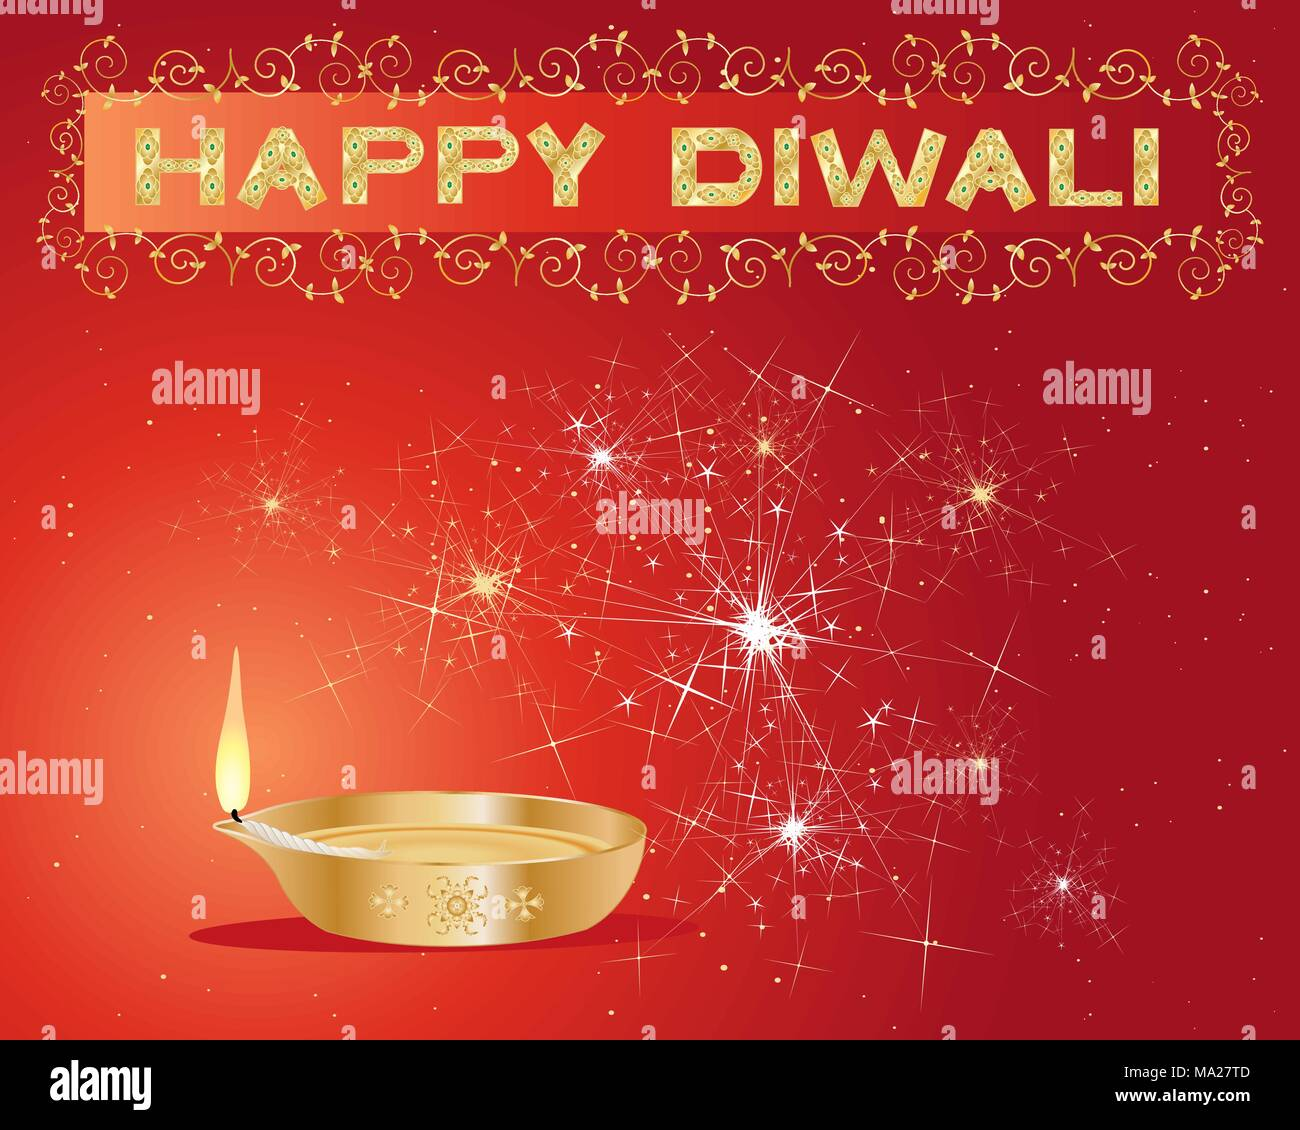 an illustration of a diwali lamp lit up with sparklers and stars and a decorative happy diwali sign on a red background - Stock Vector